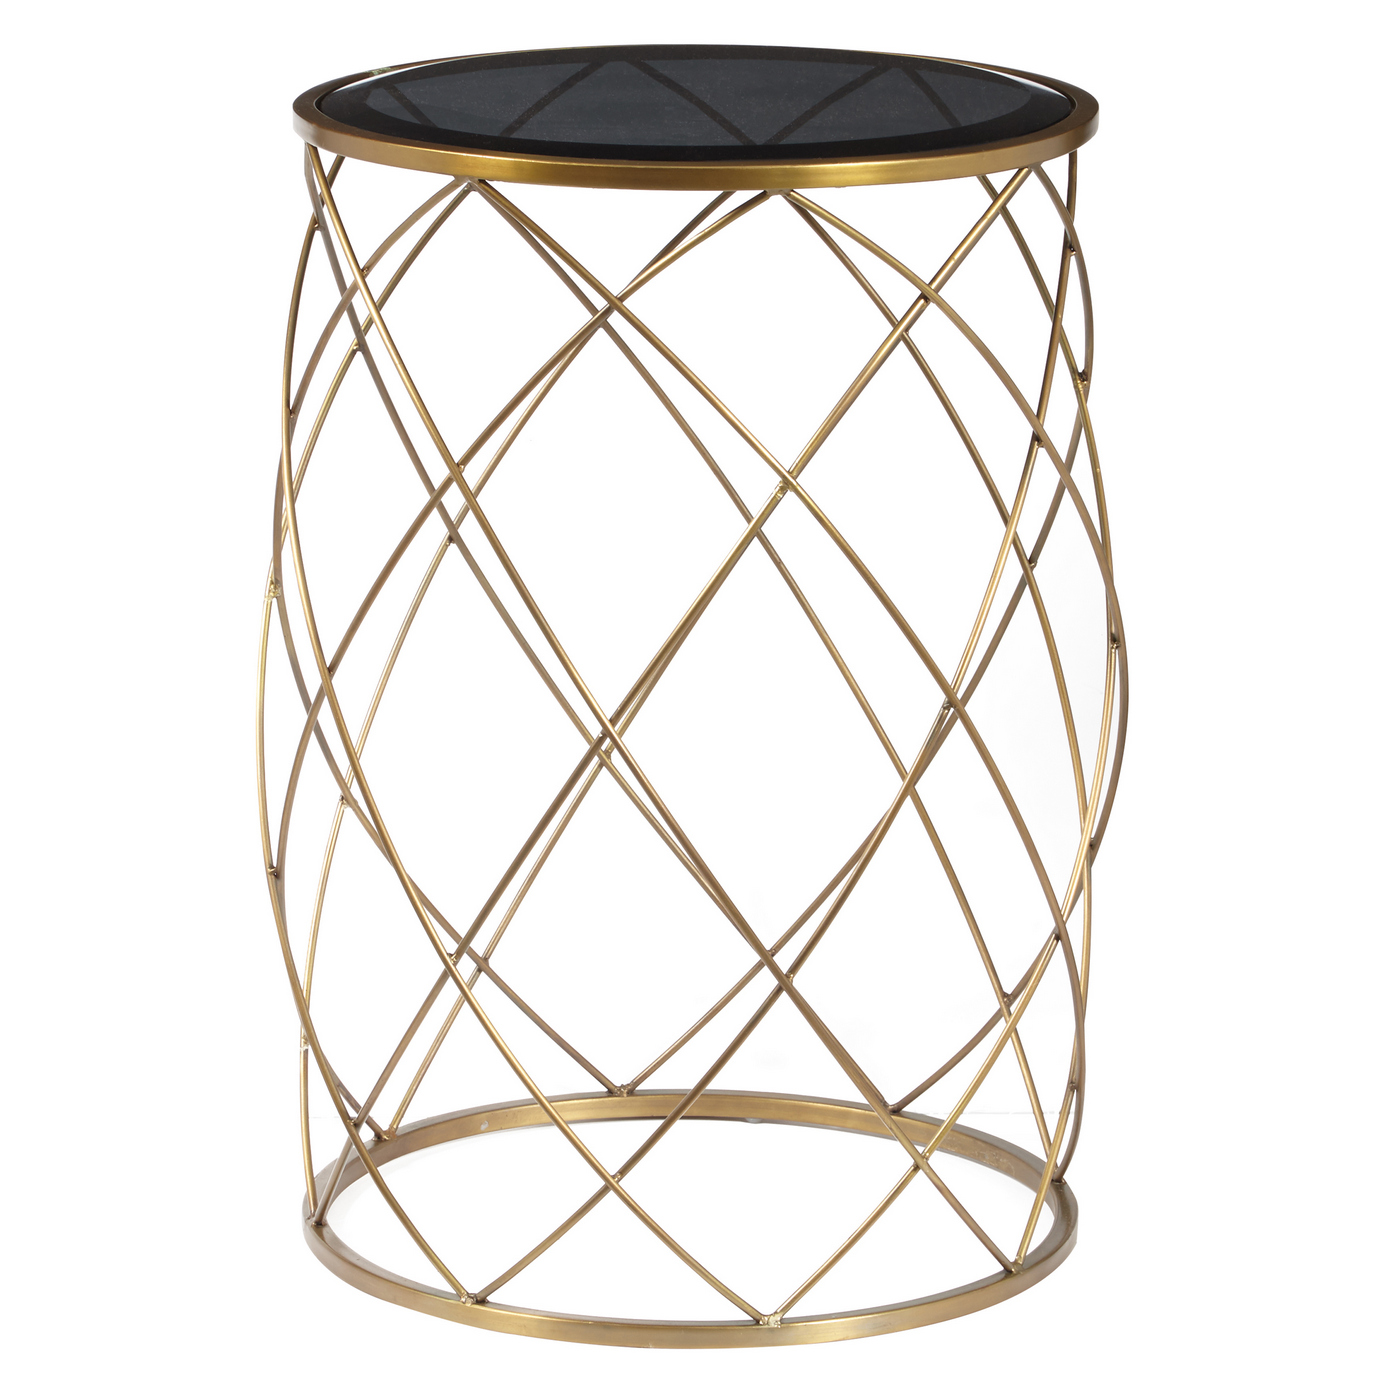 celestine convex round metal accent table with smoked glass top brass finish loading small cane side tables console set ikea bathroom storage battery operated indoor lamps coffee